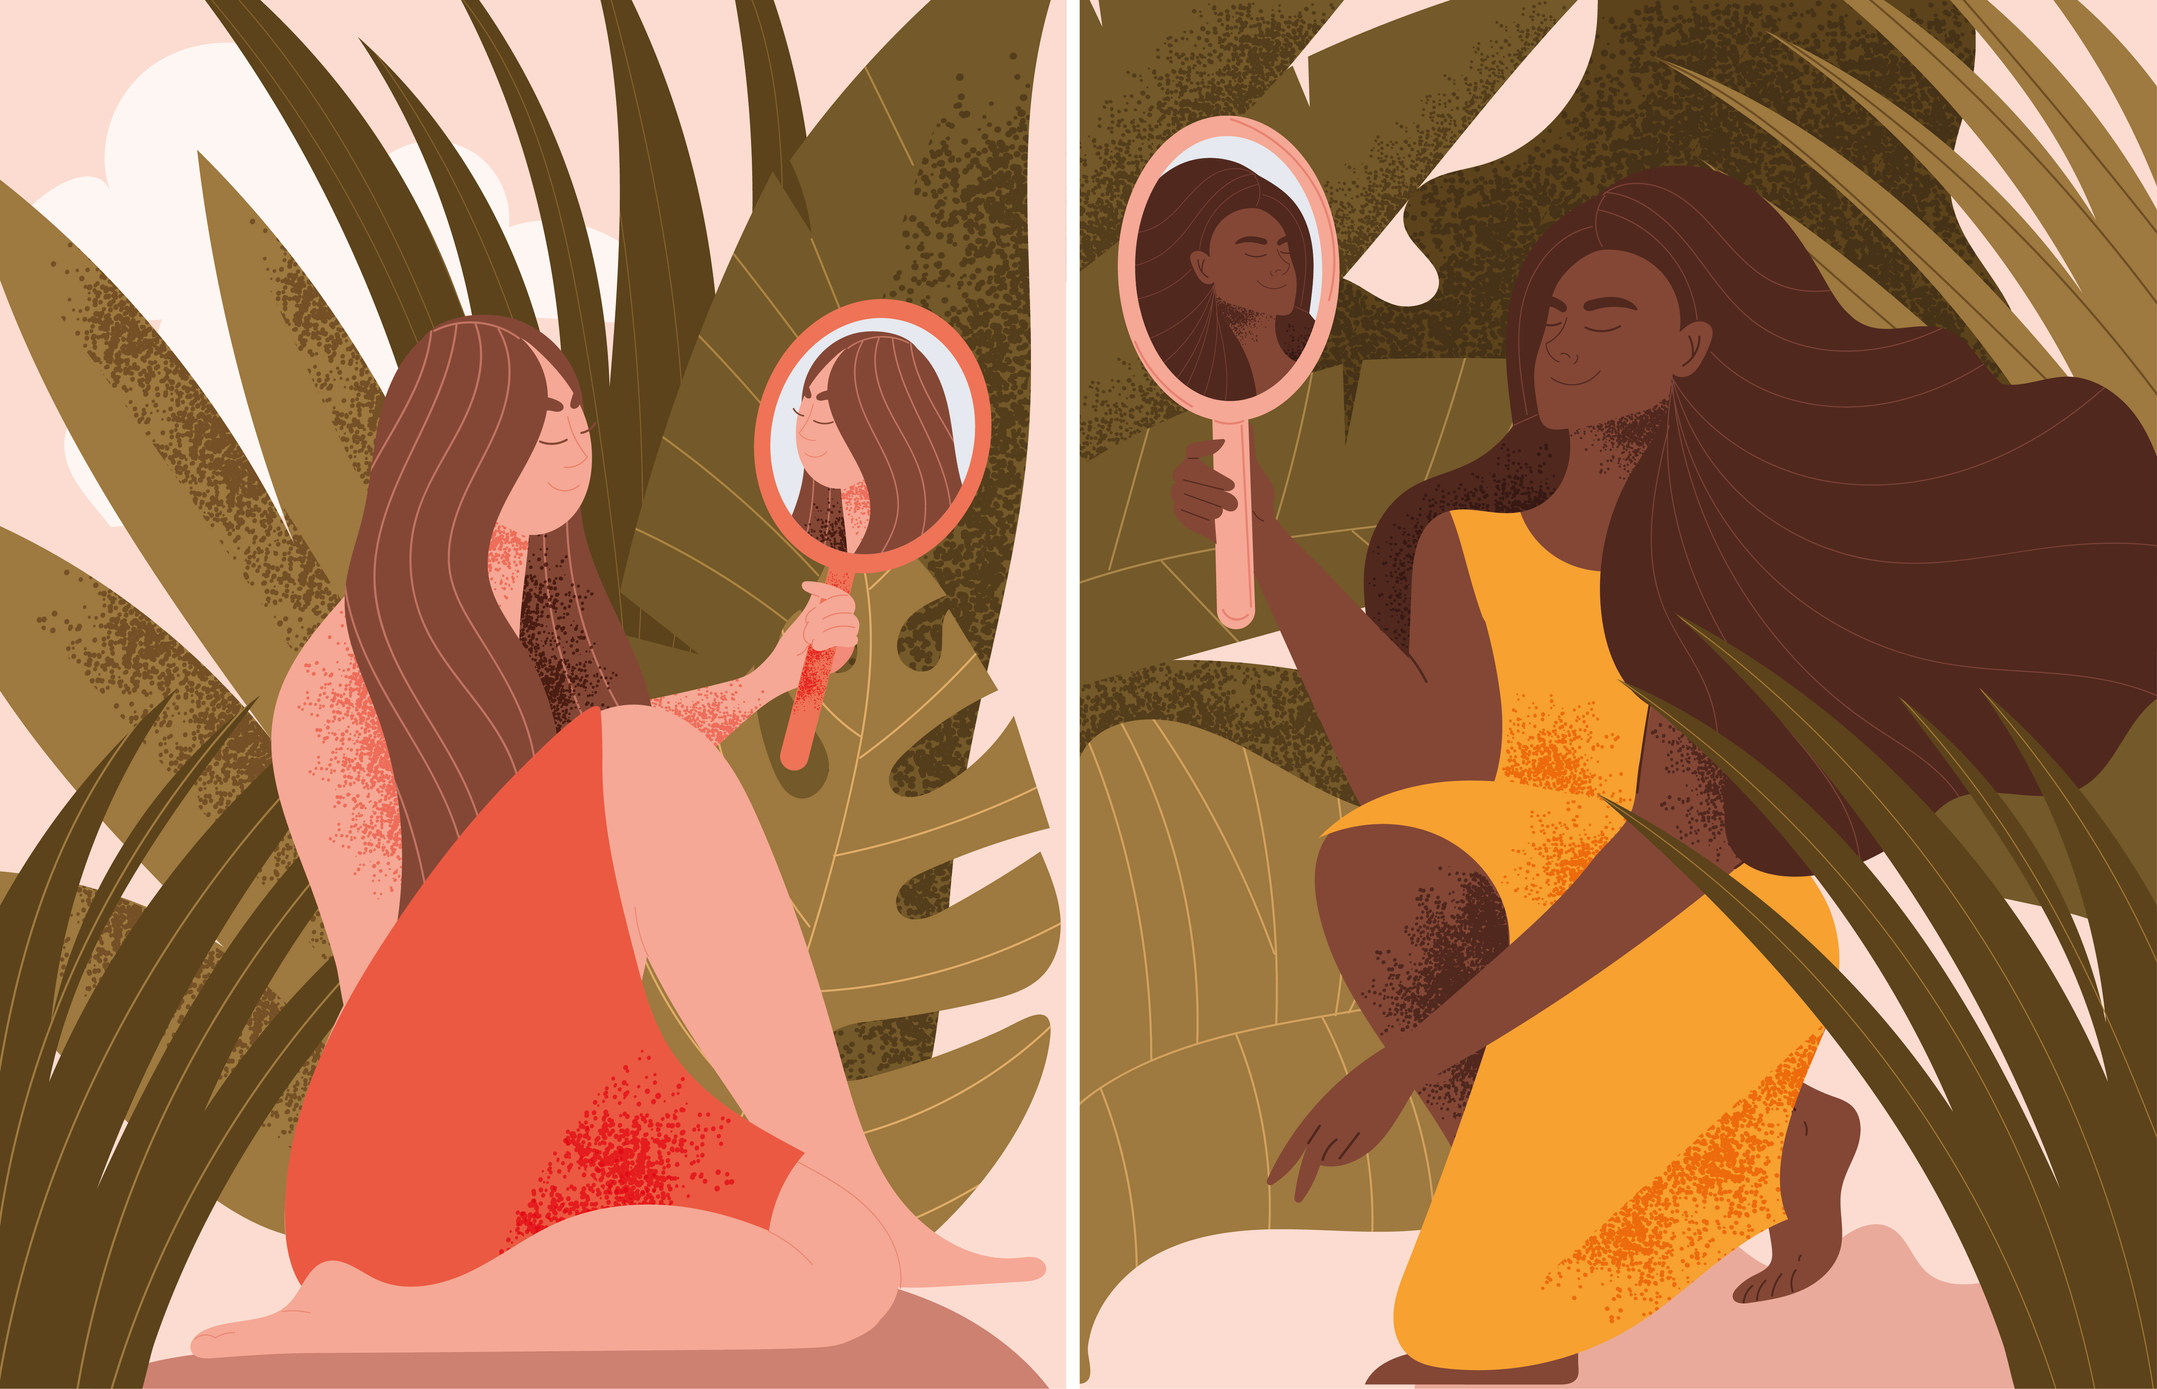 Two illustration frames of women holding mirrors in nature amongst tropical plants